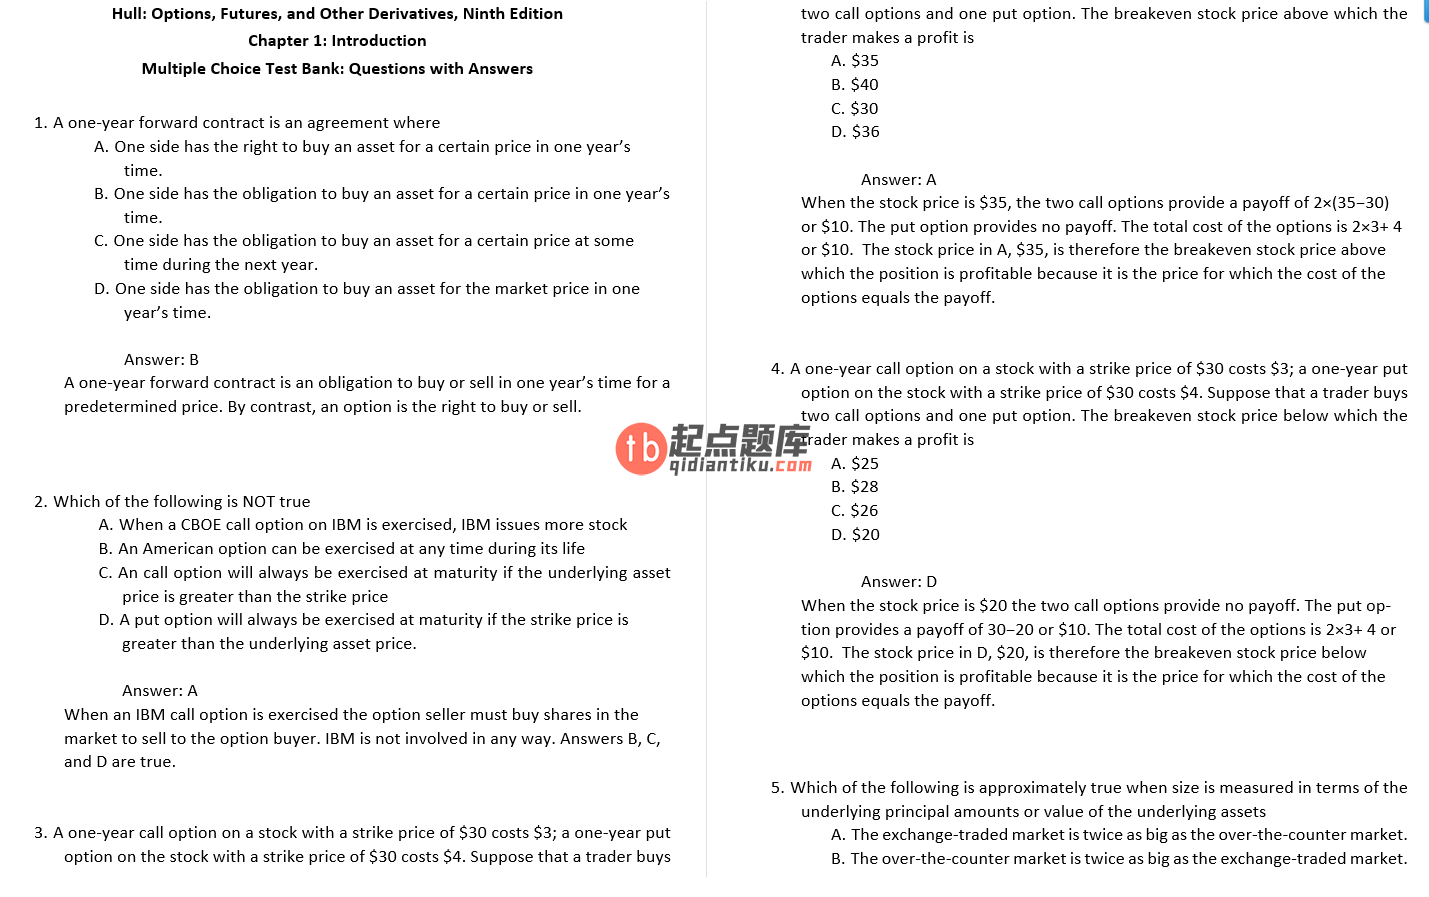 test bank for Options, Futures, and Other Derivatives 9th Edition的图片 3